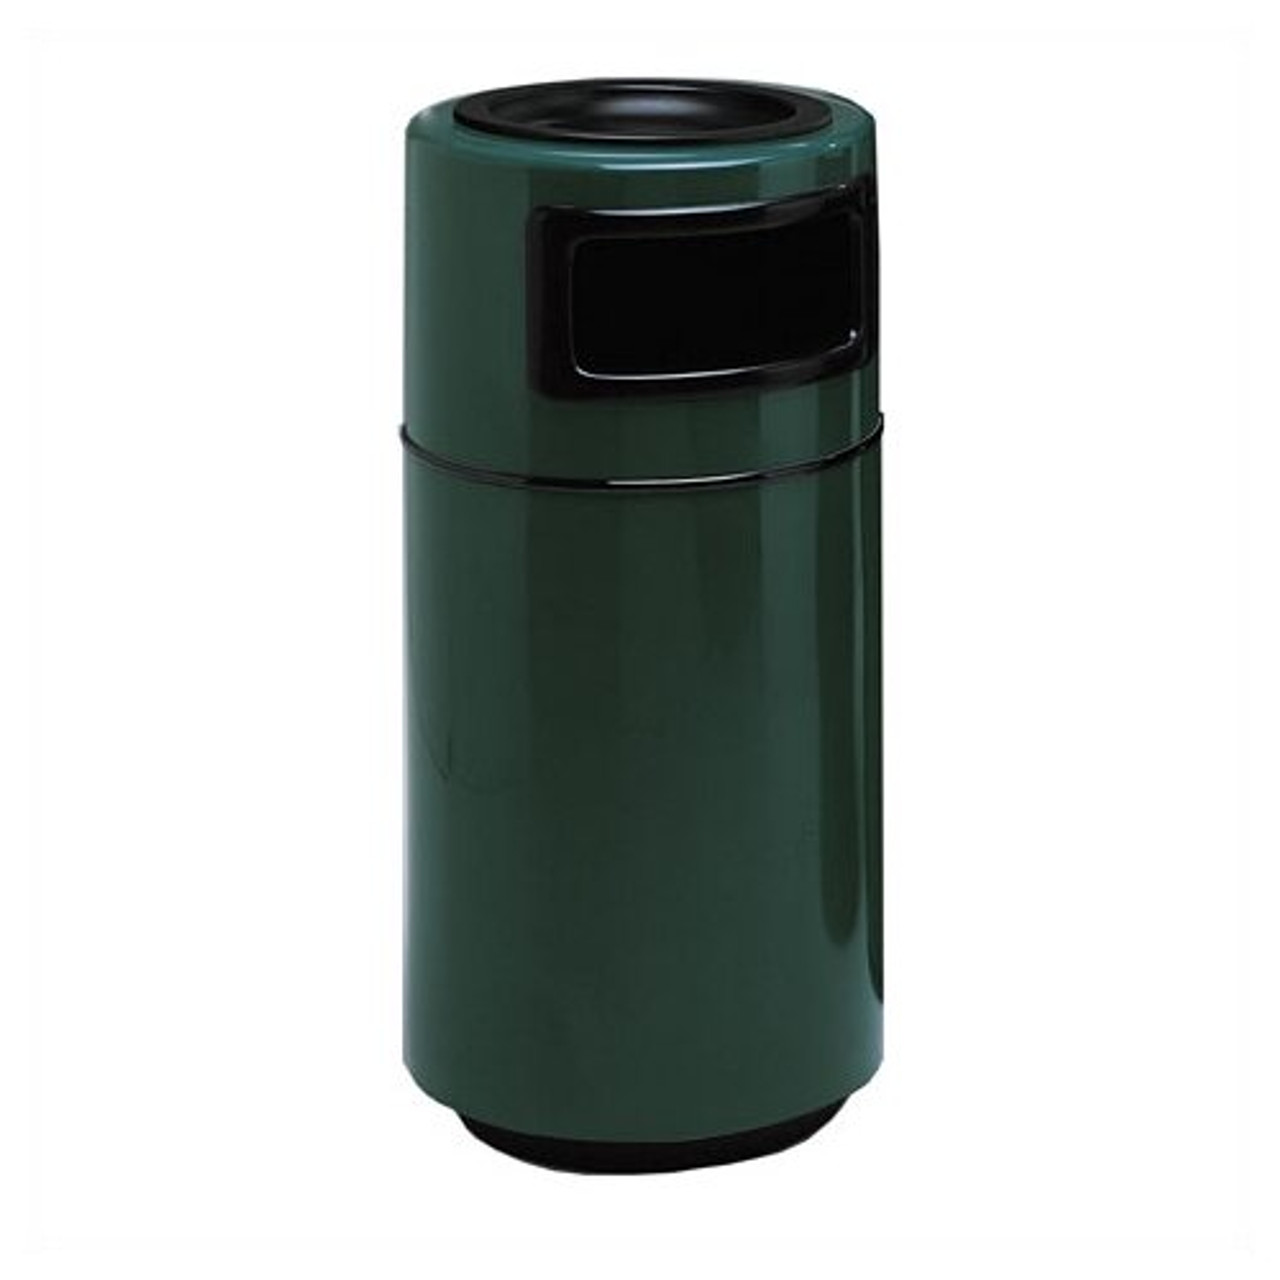 25 Gallon Side Entry Round 7C1838T Fiberglass Waste Receptacle with Ashtray